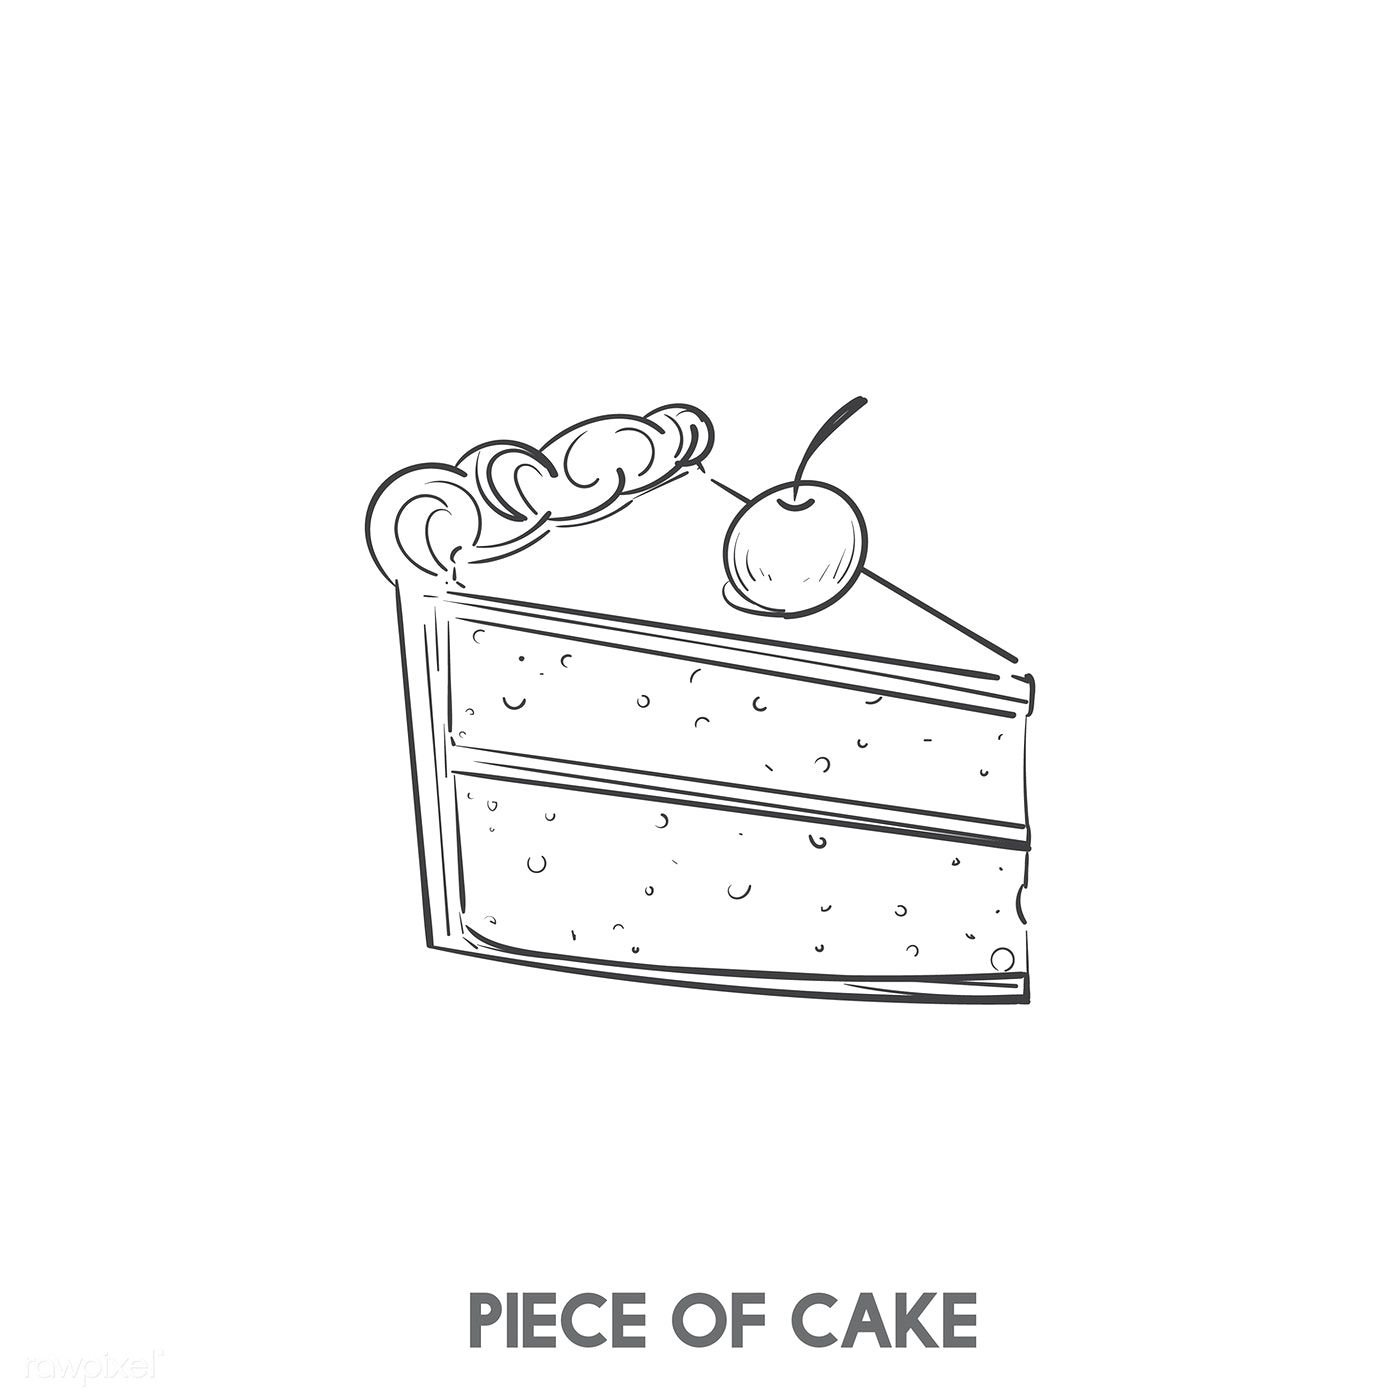 Download Premium Vector Of A Piece Of Cake 402757 Cake Icon Cake Vector Cake Drawing